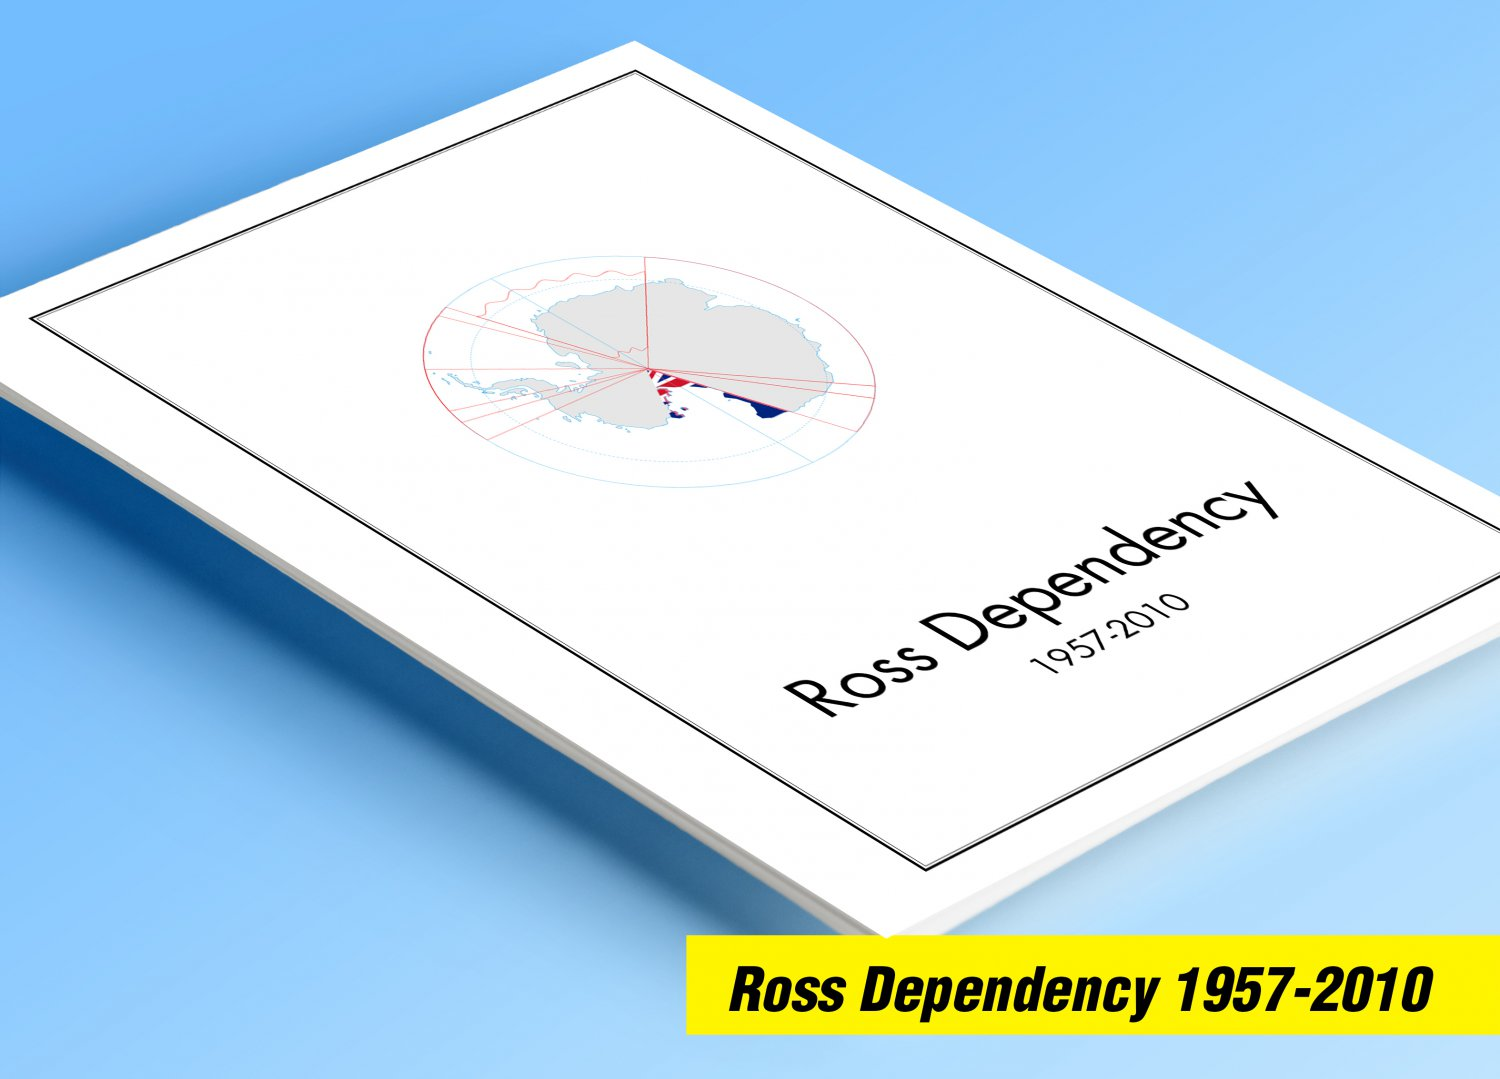 ROSS DEPENDENCY 1957-2010 COLOR PRINTED STAMP ALBUM PAGES  (16 illustrated pages)